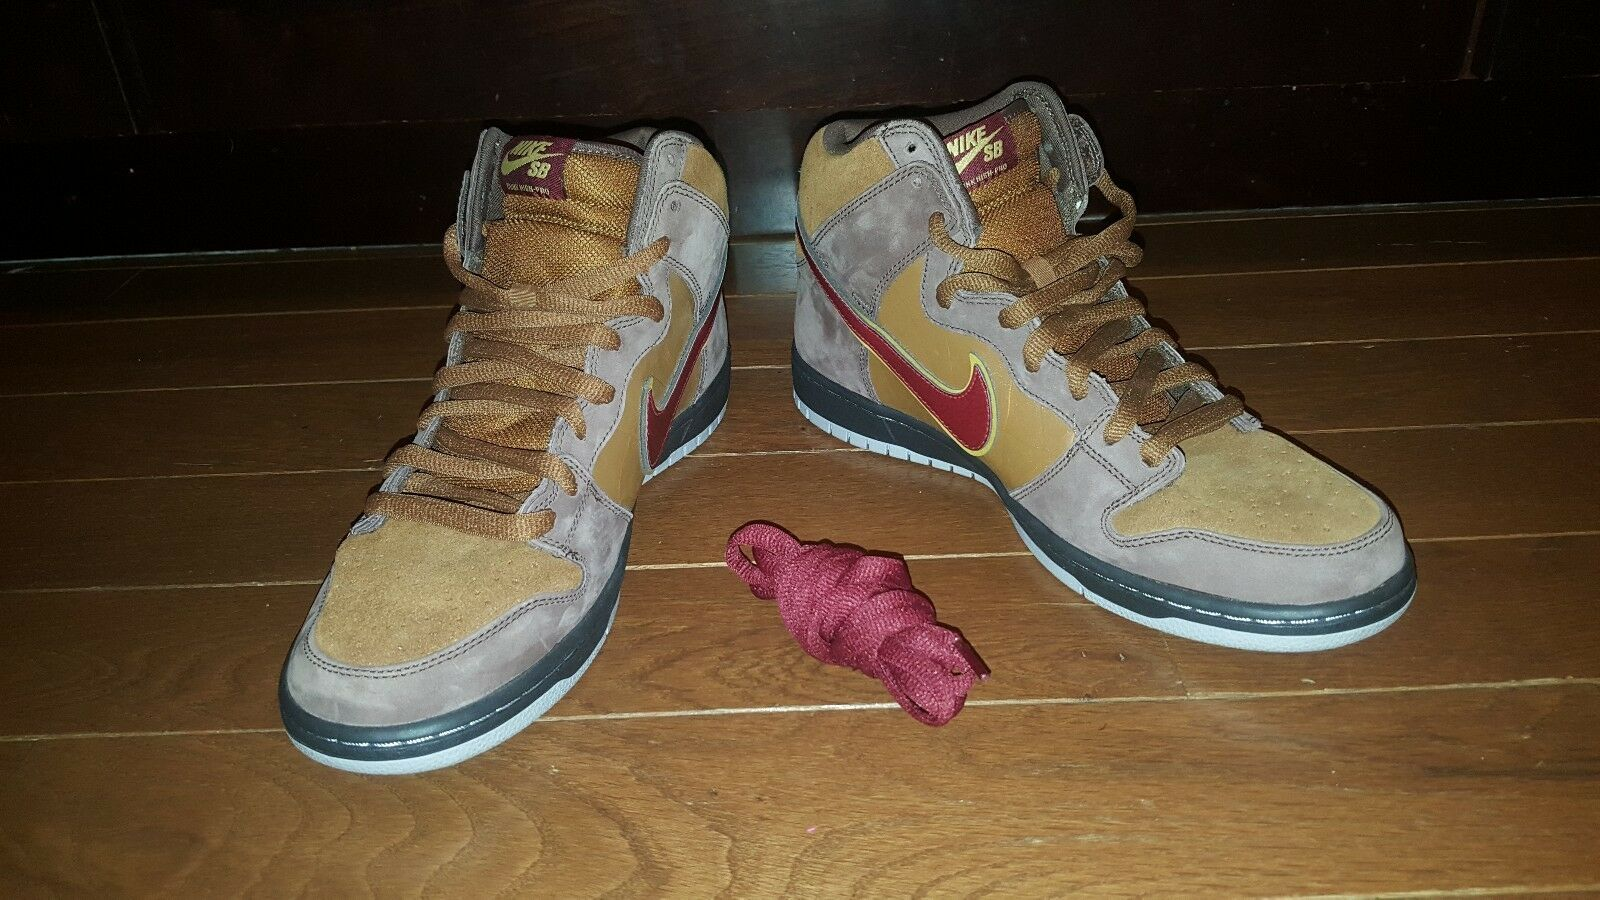 Nike Dunk High Premium SB Cigar City RARE Deadstock size 10 BRAND NEW 313171 262